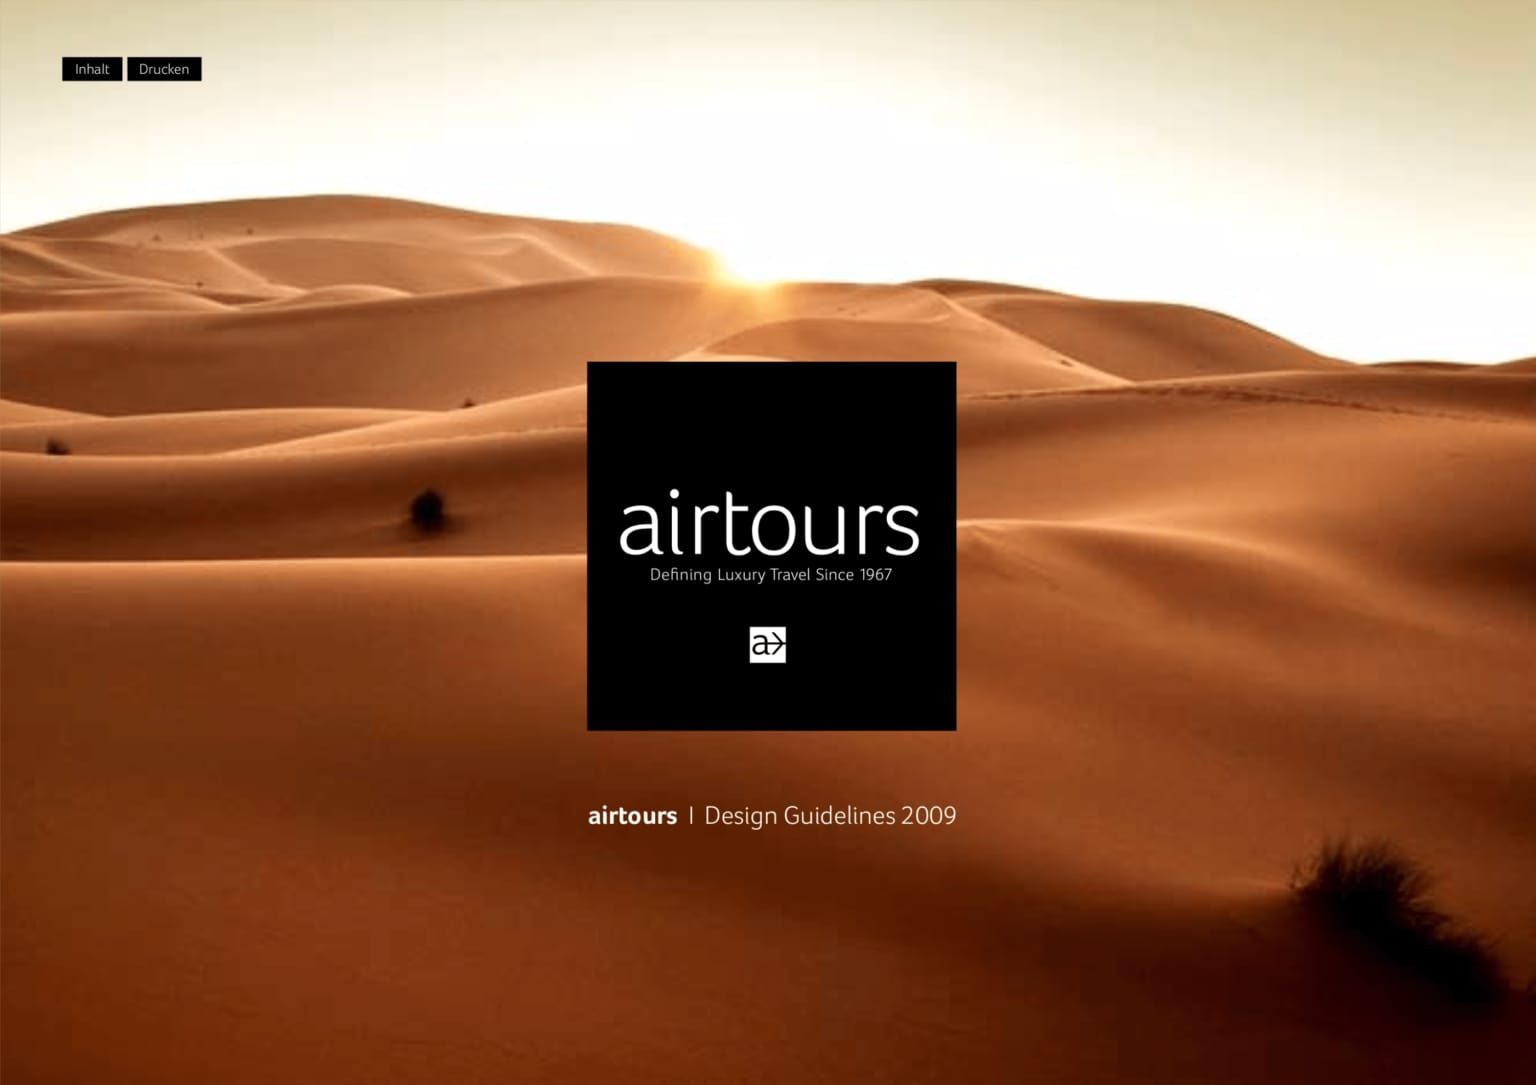 airtours Luxury Travel Brand Relaunch